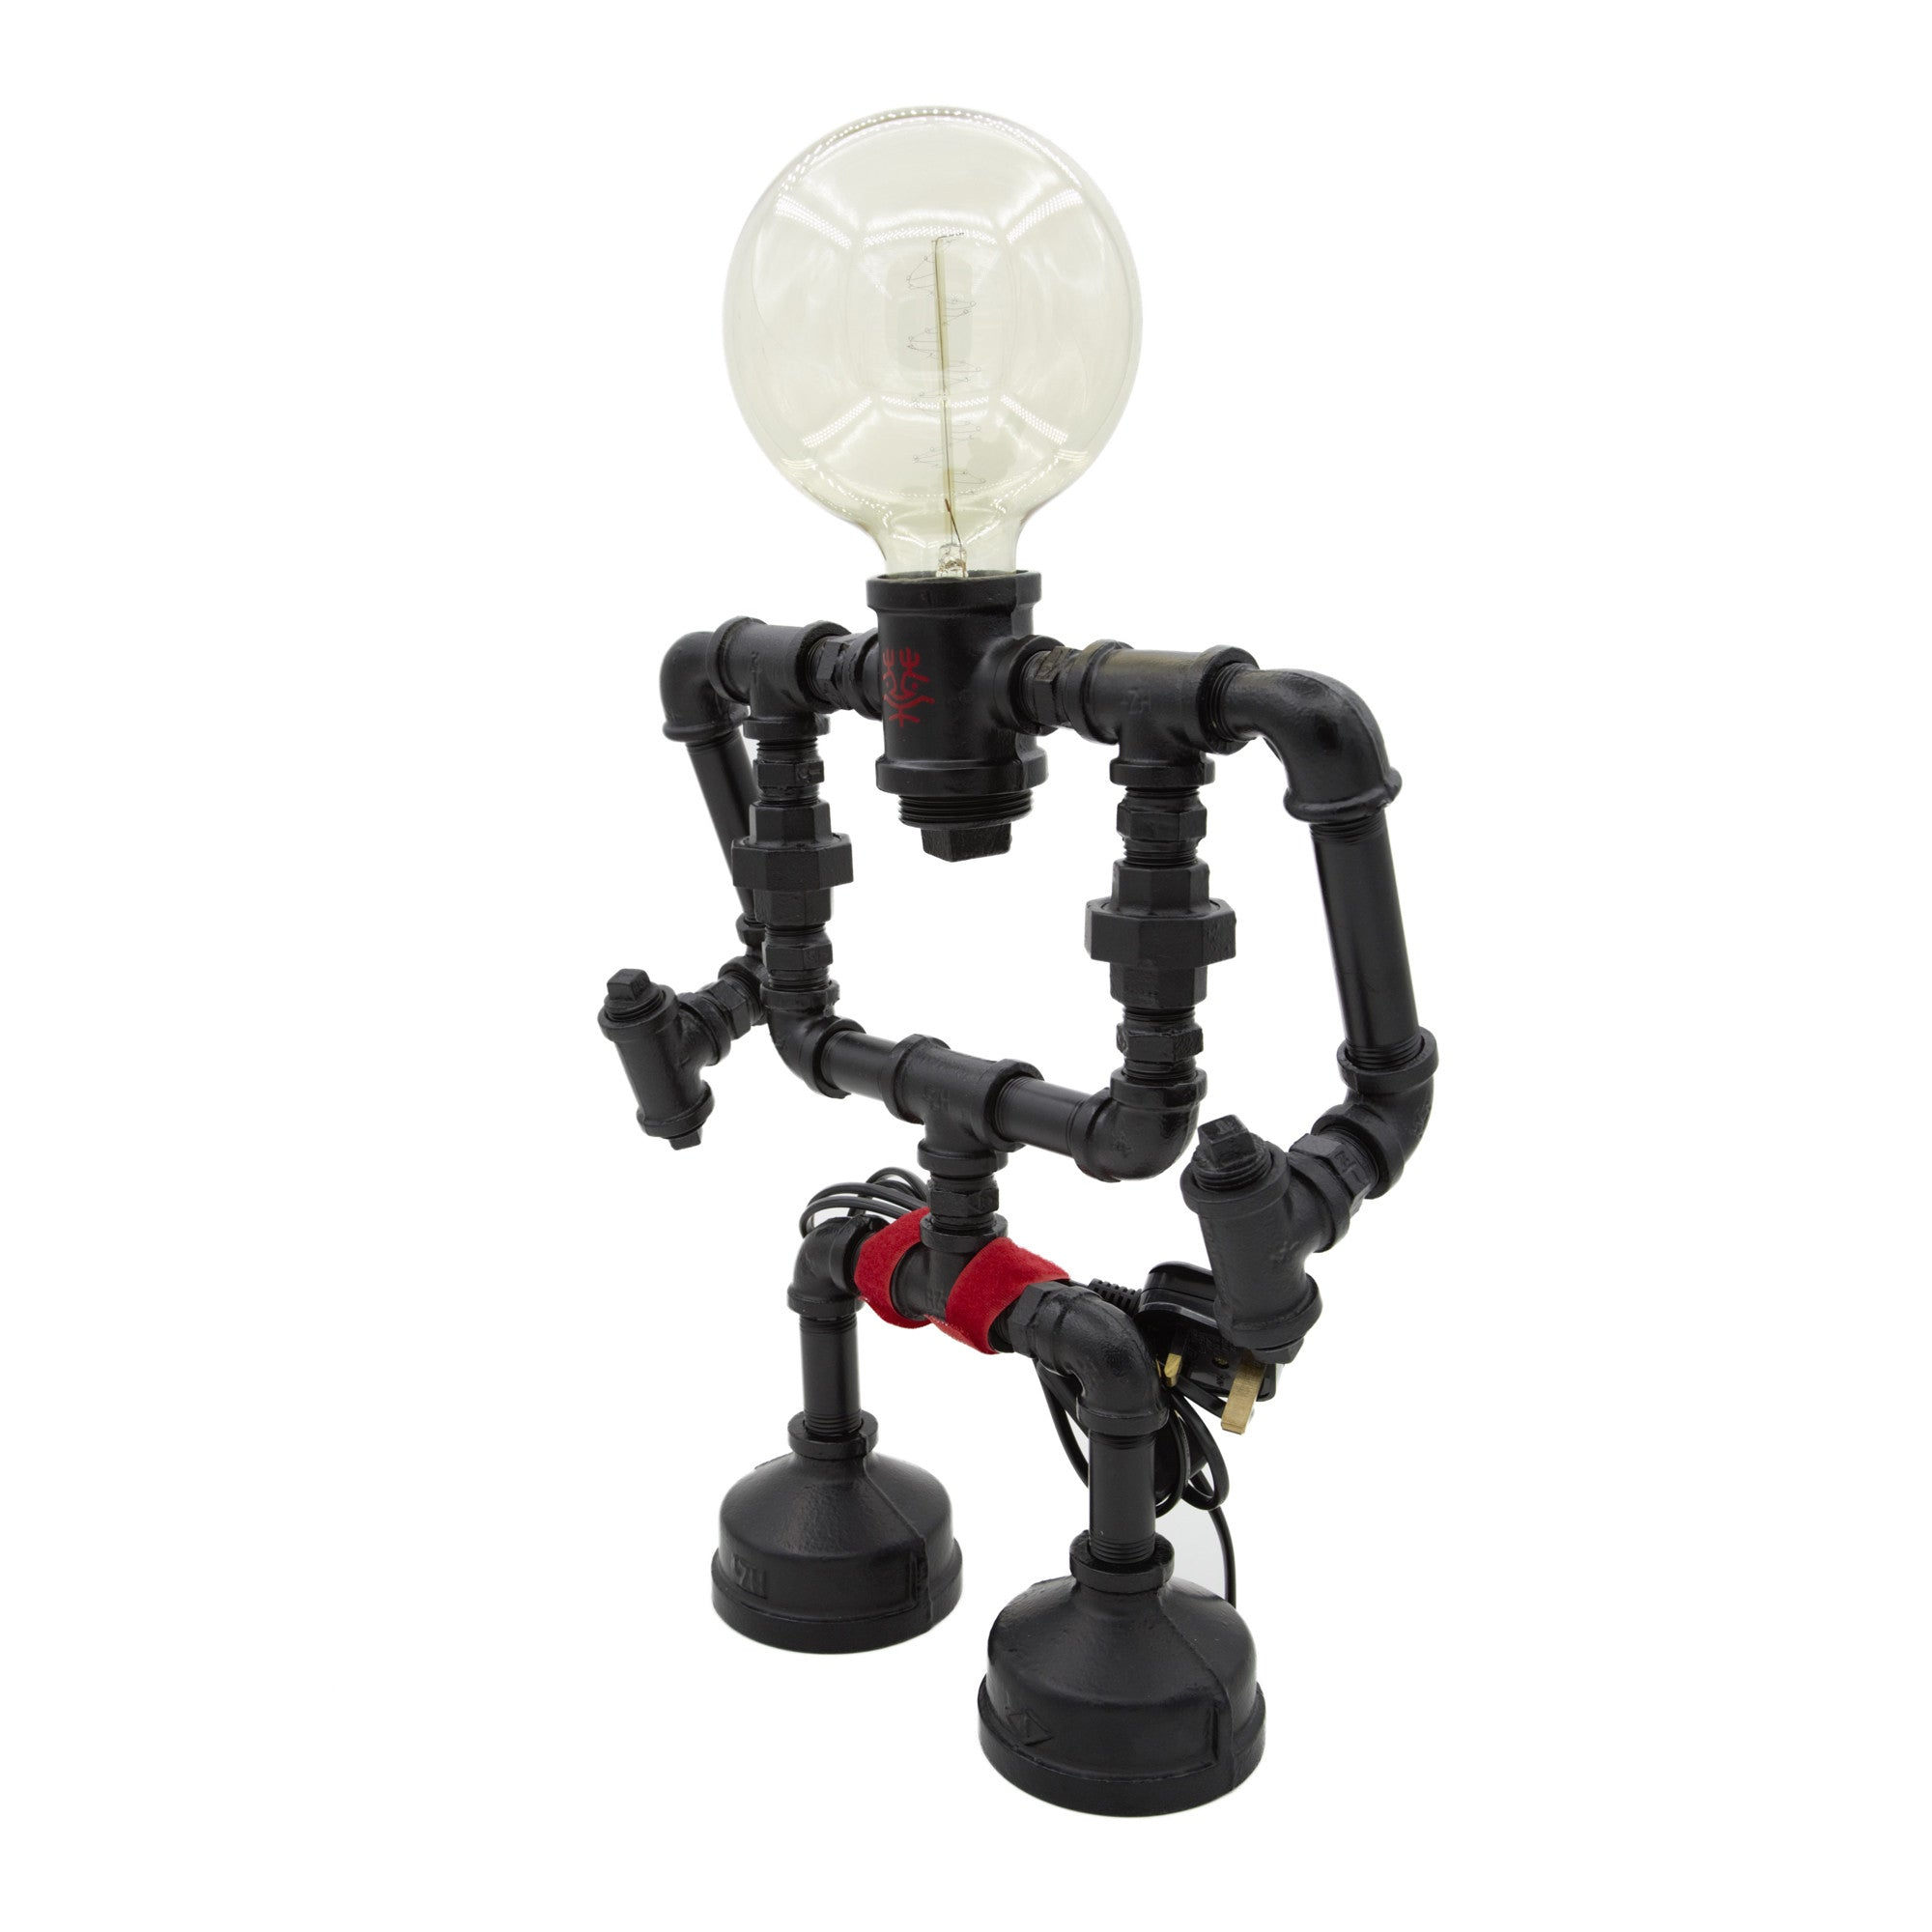 Touch Sensitive Robot Table Lamp - Large black